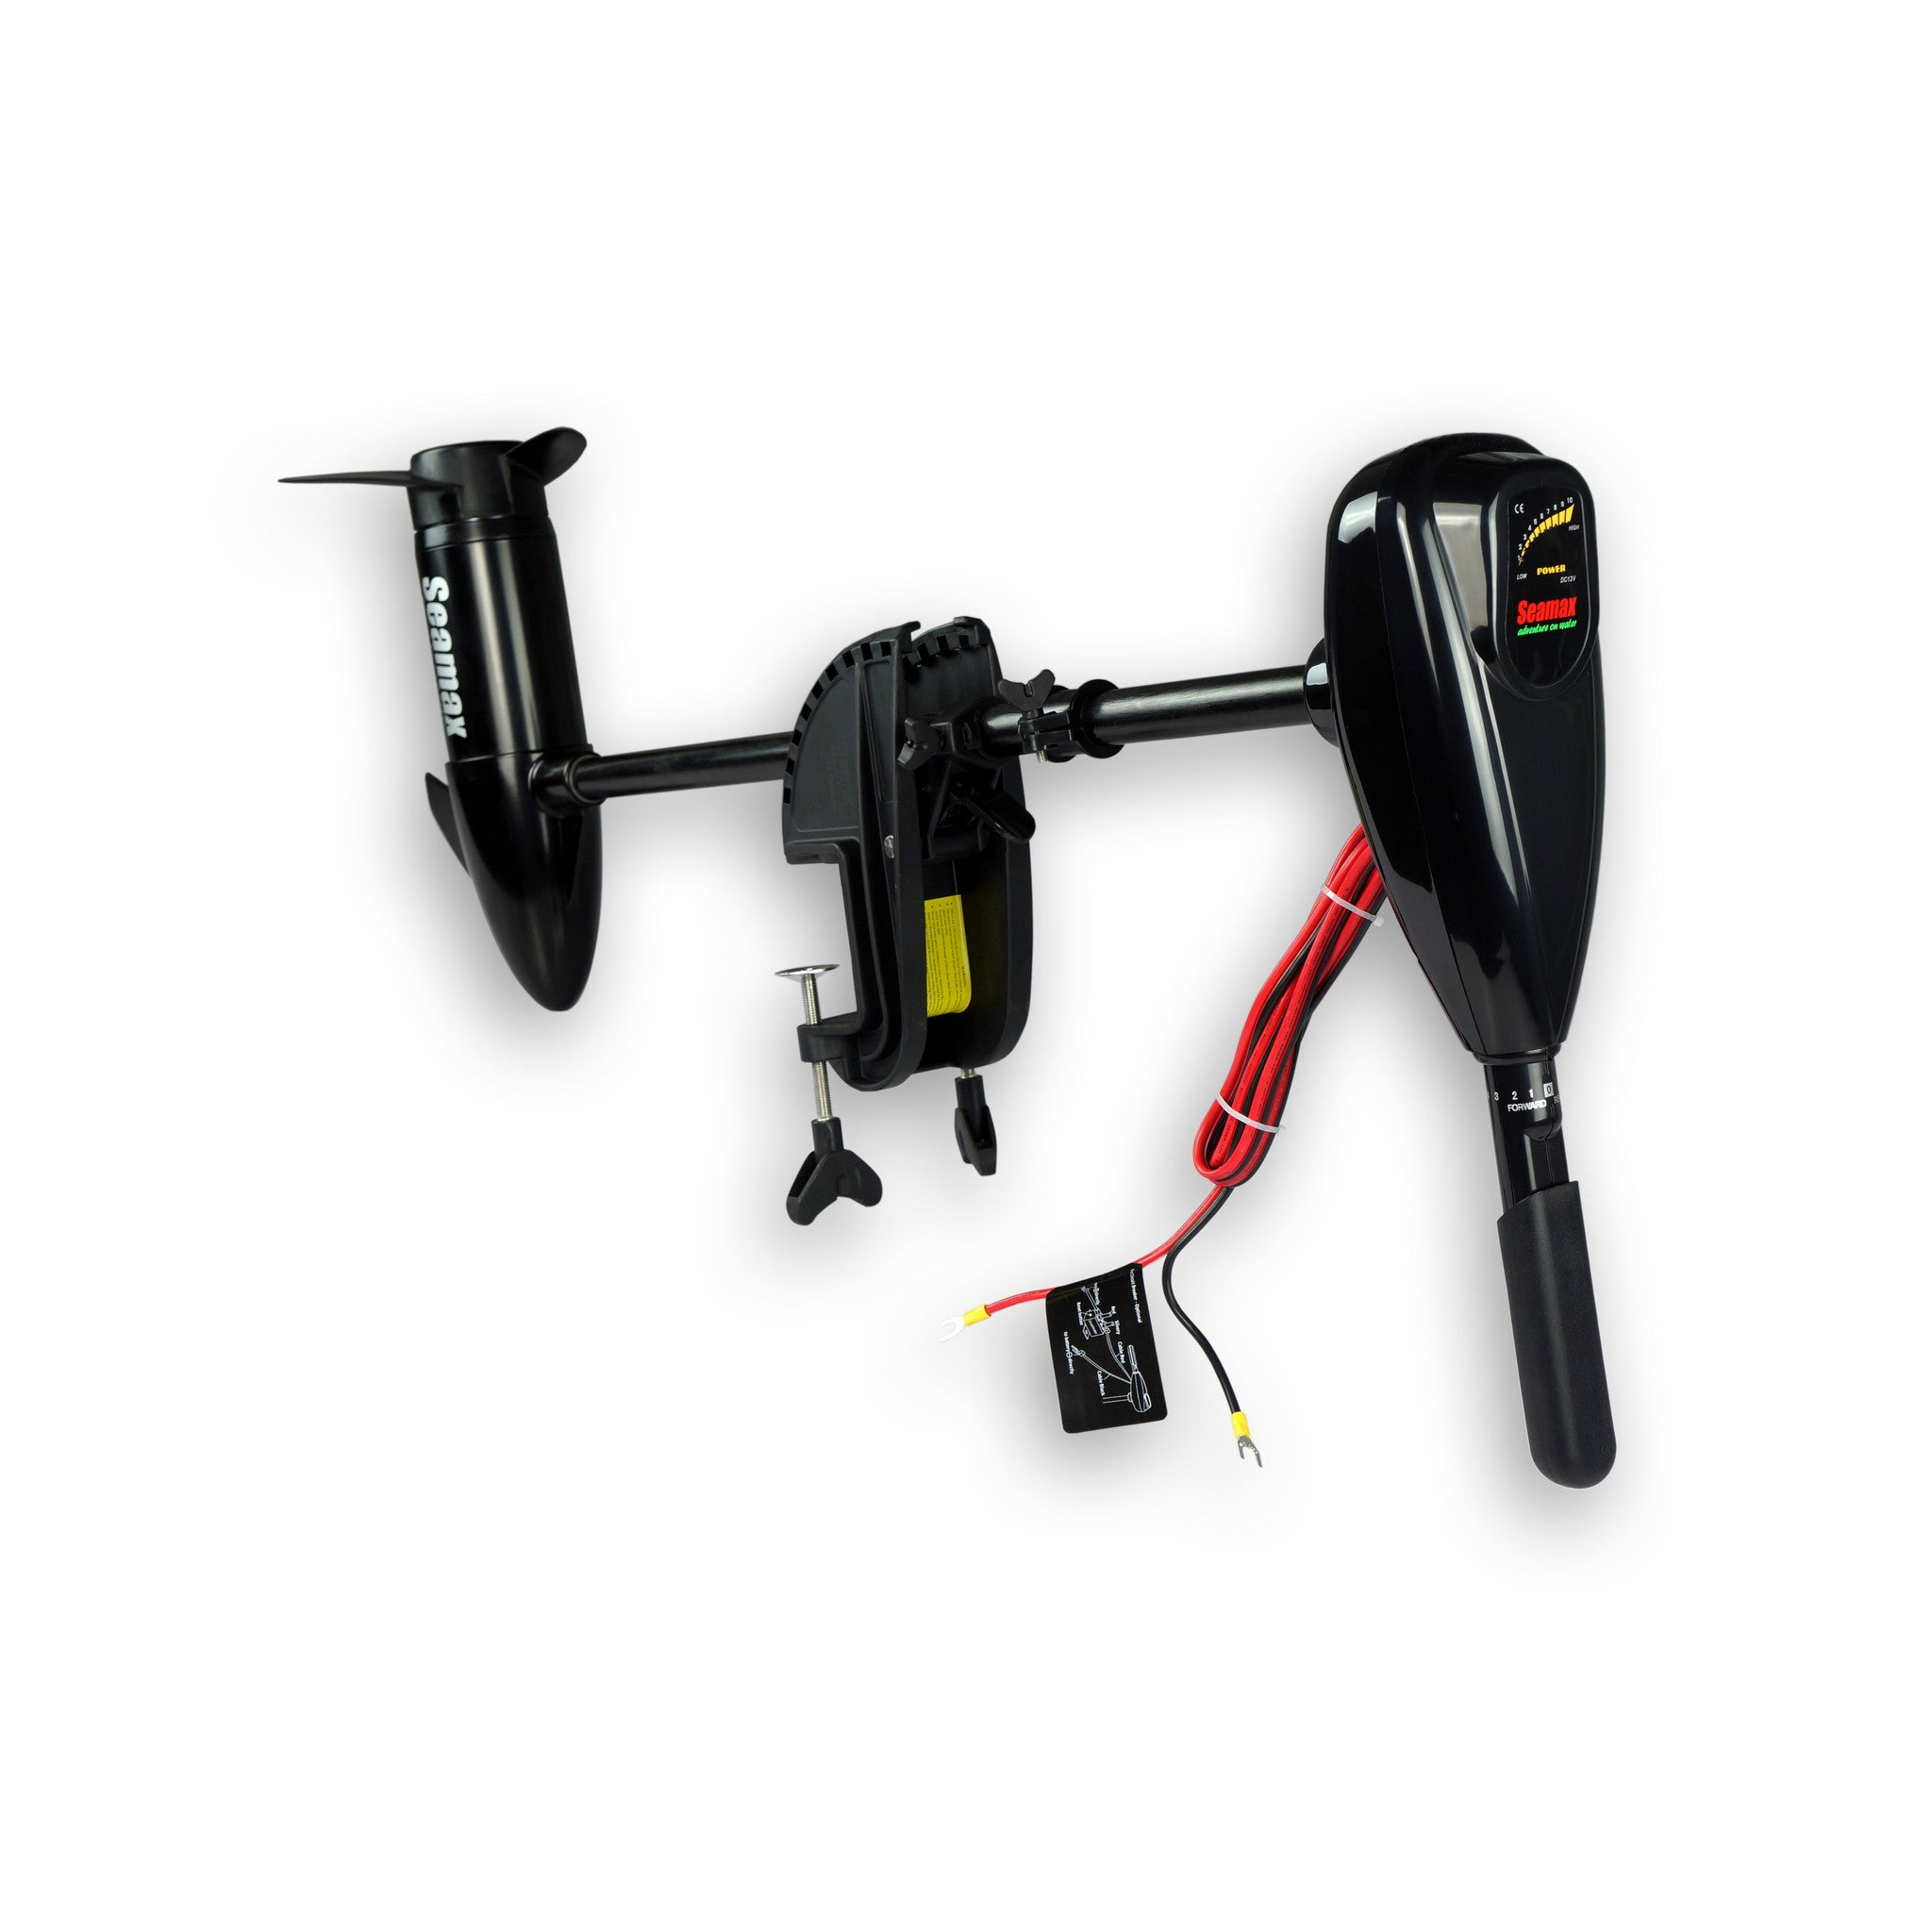 Motors seamax marine for 30 lb thrust trolling motor speed